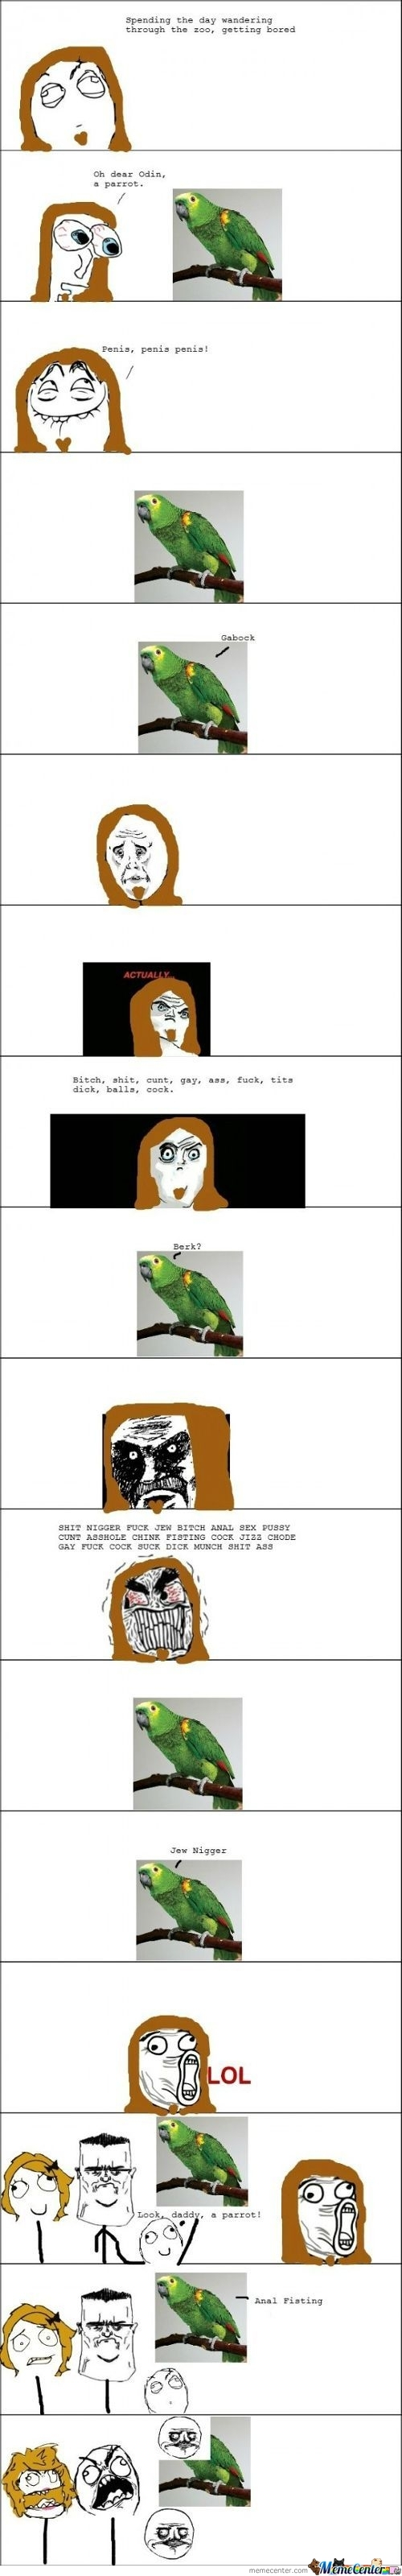 Dirty Parrot